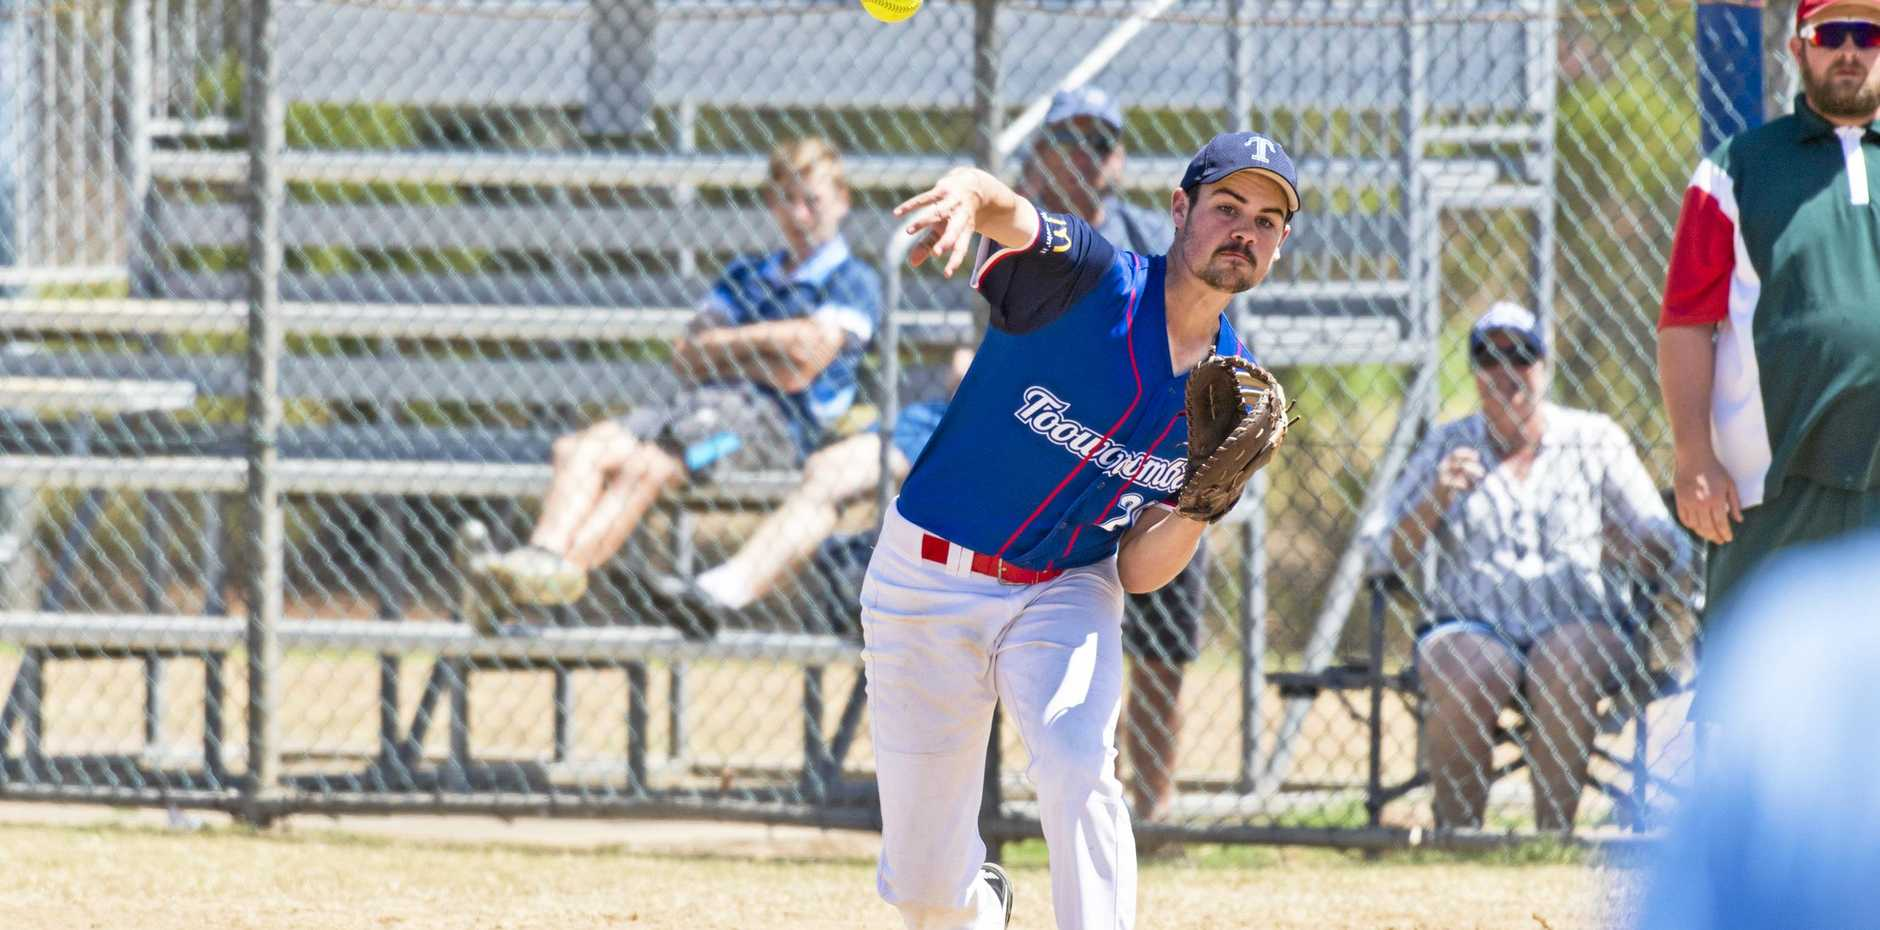 ON BASE: Toowoomba's Rohan Doherty fires off a throw during his side's Queensland under-18 men state championship final against Redlands at Kearneys Spring Sporting Complex.